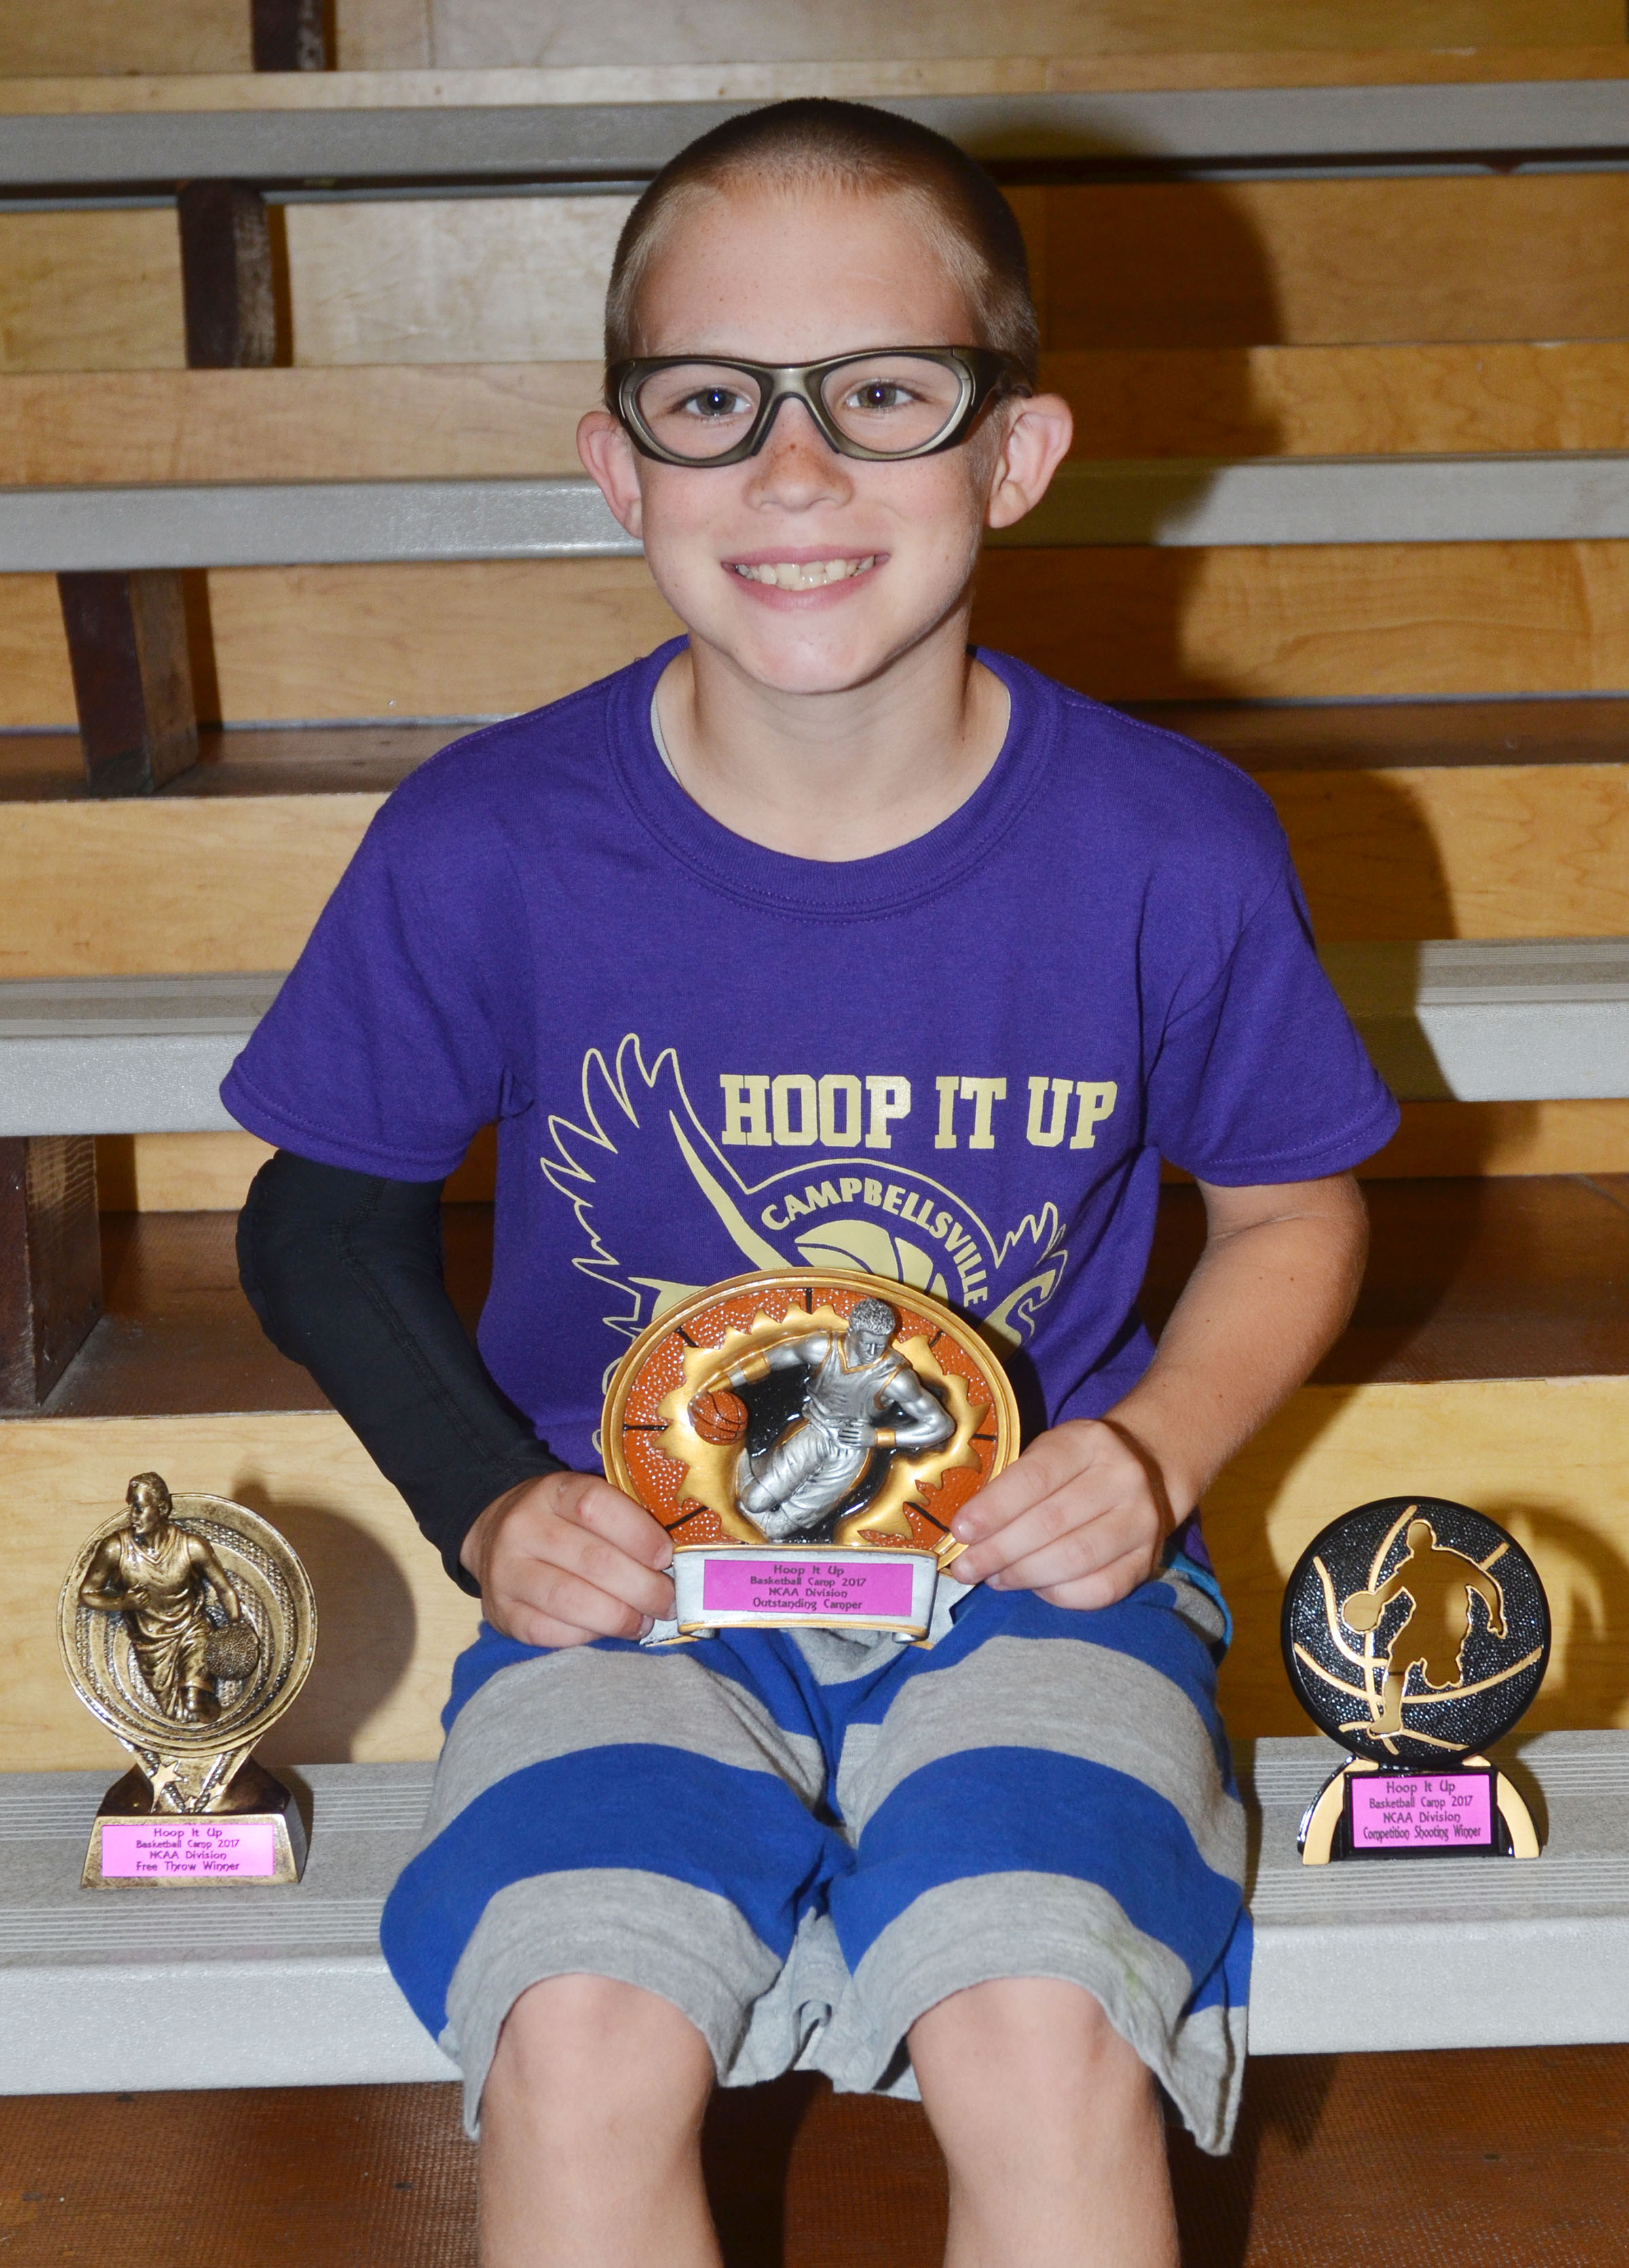 Lee Colvin won camp awards in the NCAA division for free throws, competition shooting and outstanding camper.